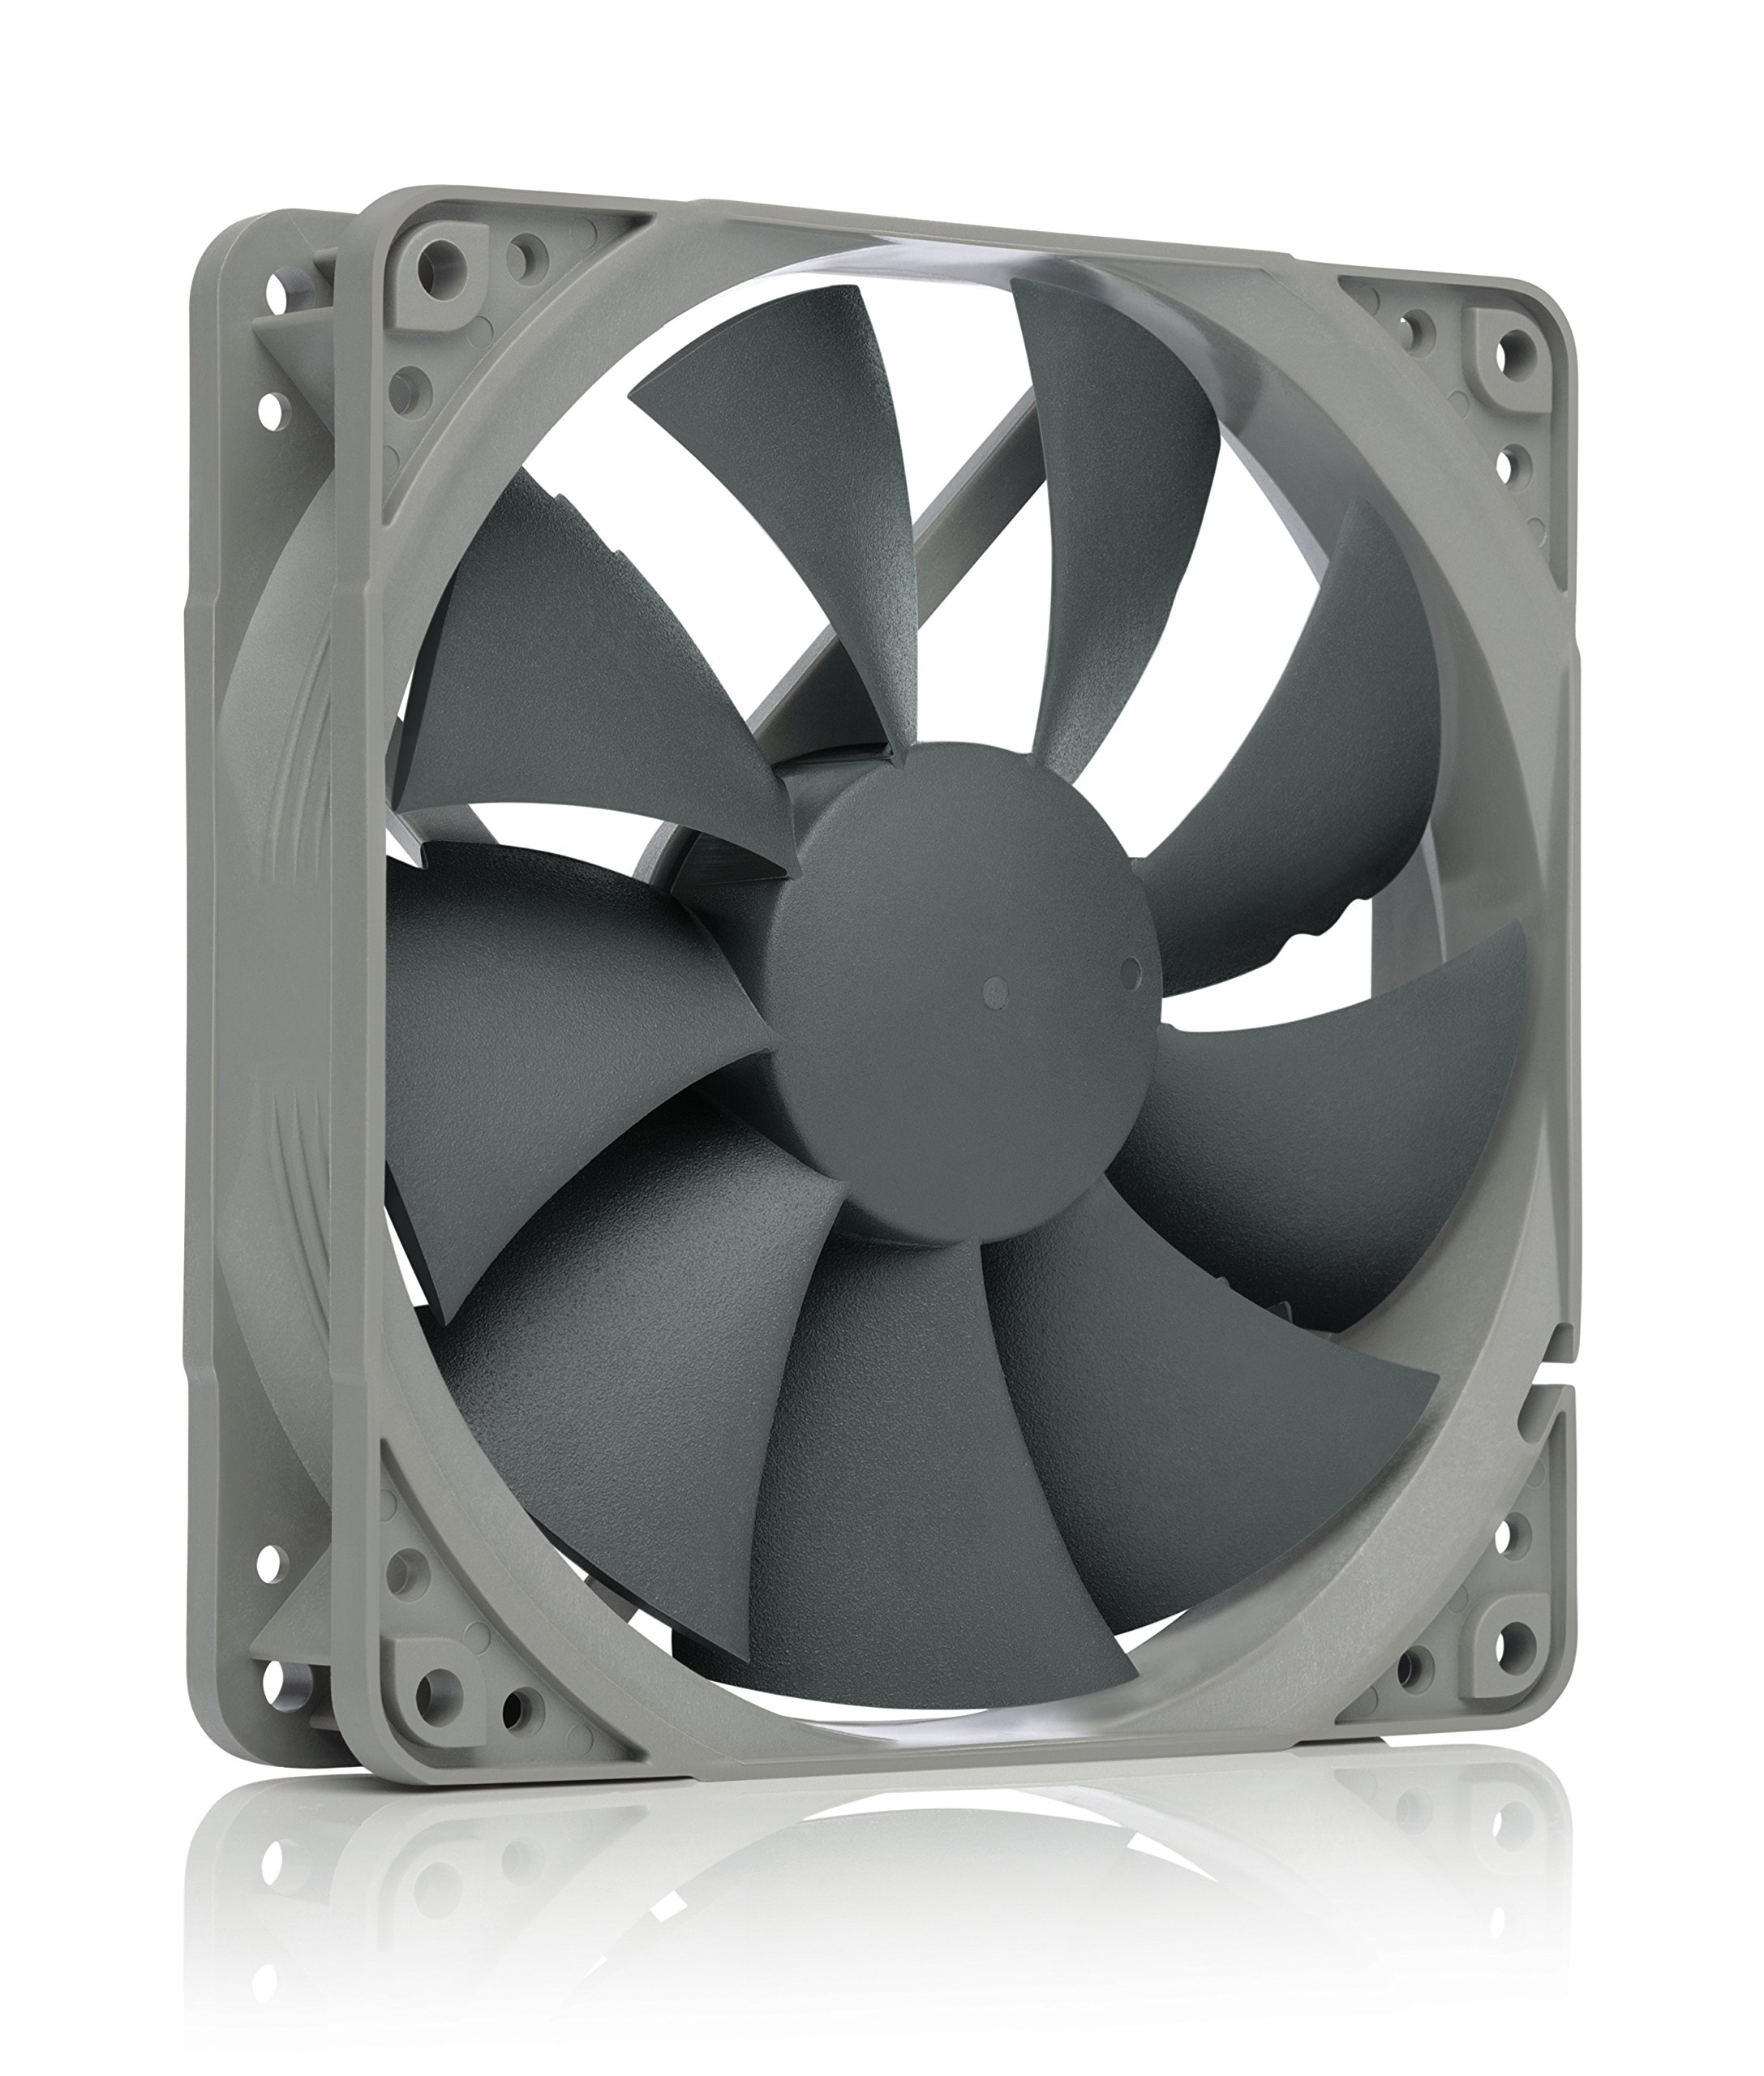 noctua NF-P12 redux-1300 high-performance quiet 120mm fan, ideal for PC cases, CPU heatsinks and water cooling radiators, award-winning premium model in affordable grey redux edition